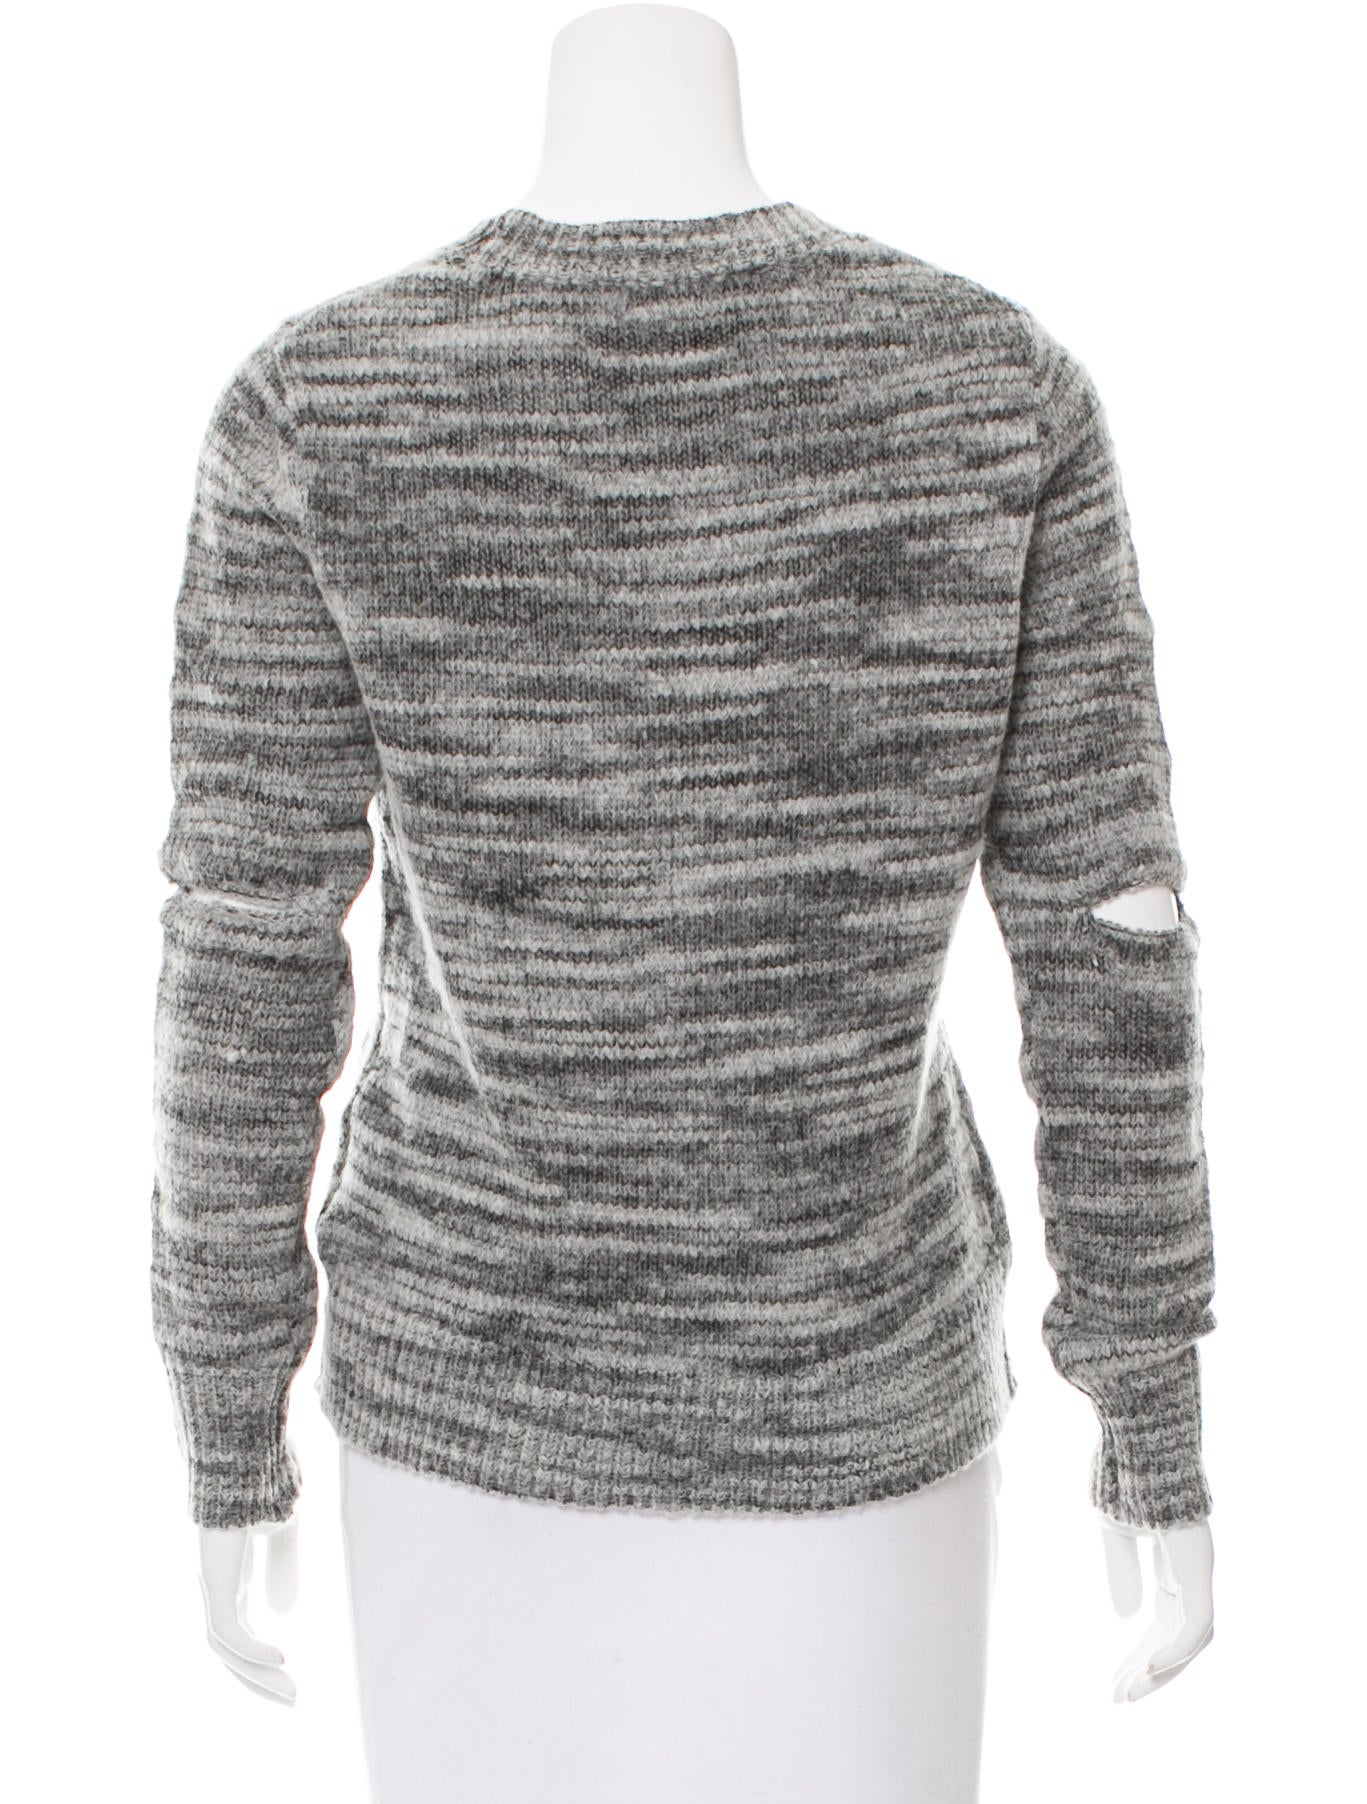 Raquel Allegra Distressed Knit Sweater w/ Tags - Clothing - WRQLL26202 The ...